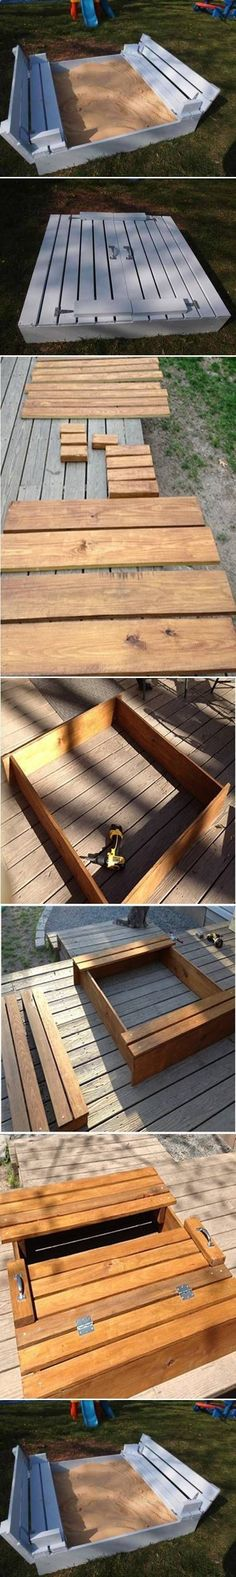 DIY Sandbox...thats pretty neat